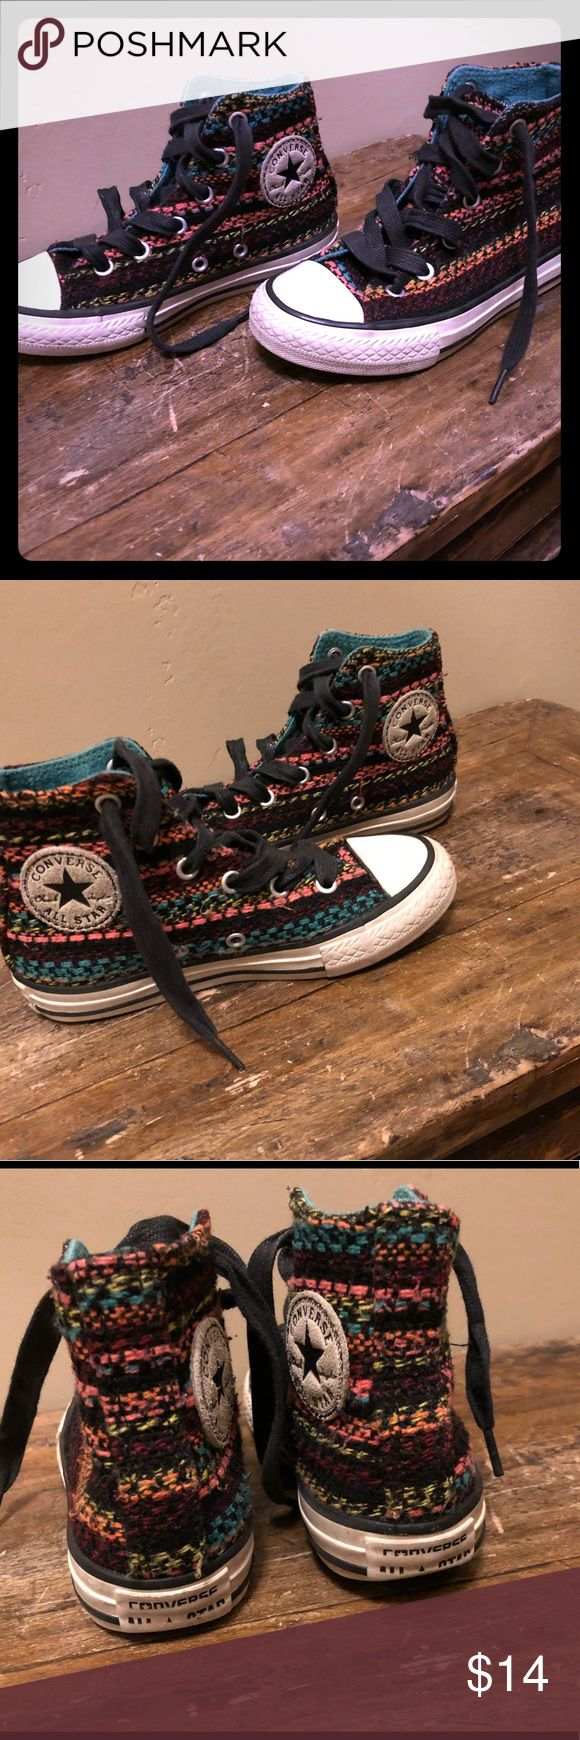 Kids Tapestry Converse High Tops size 11 Darling high tops! Probably more for girls tastes, but cute on any little feet. Has some wear but still look great. Converse Shoes Sneakers